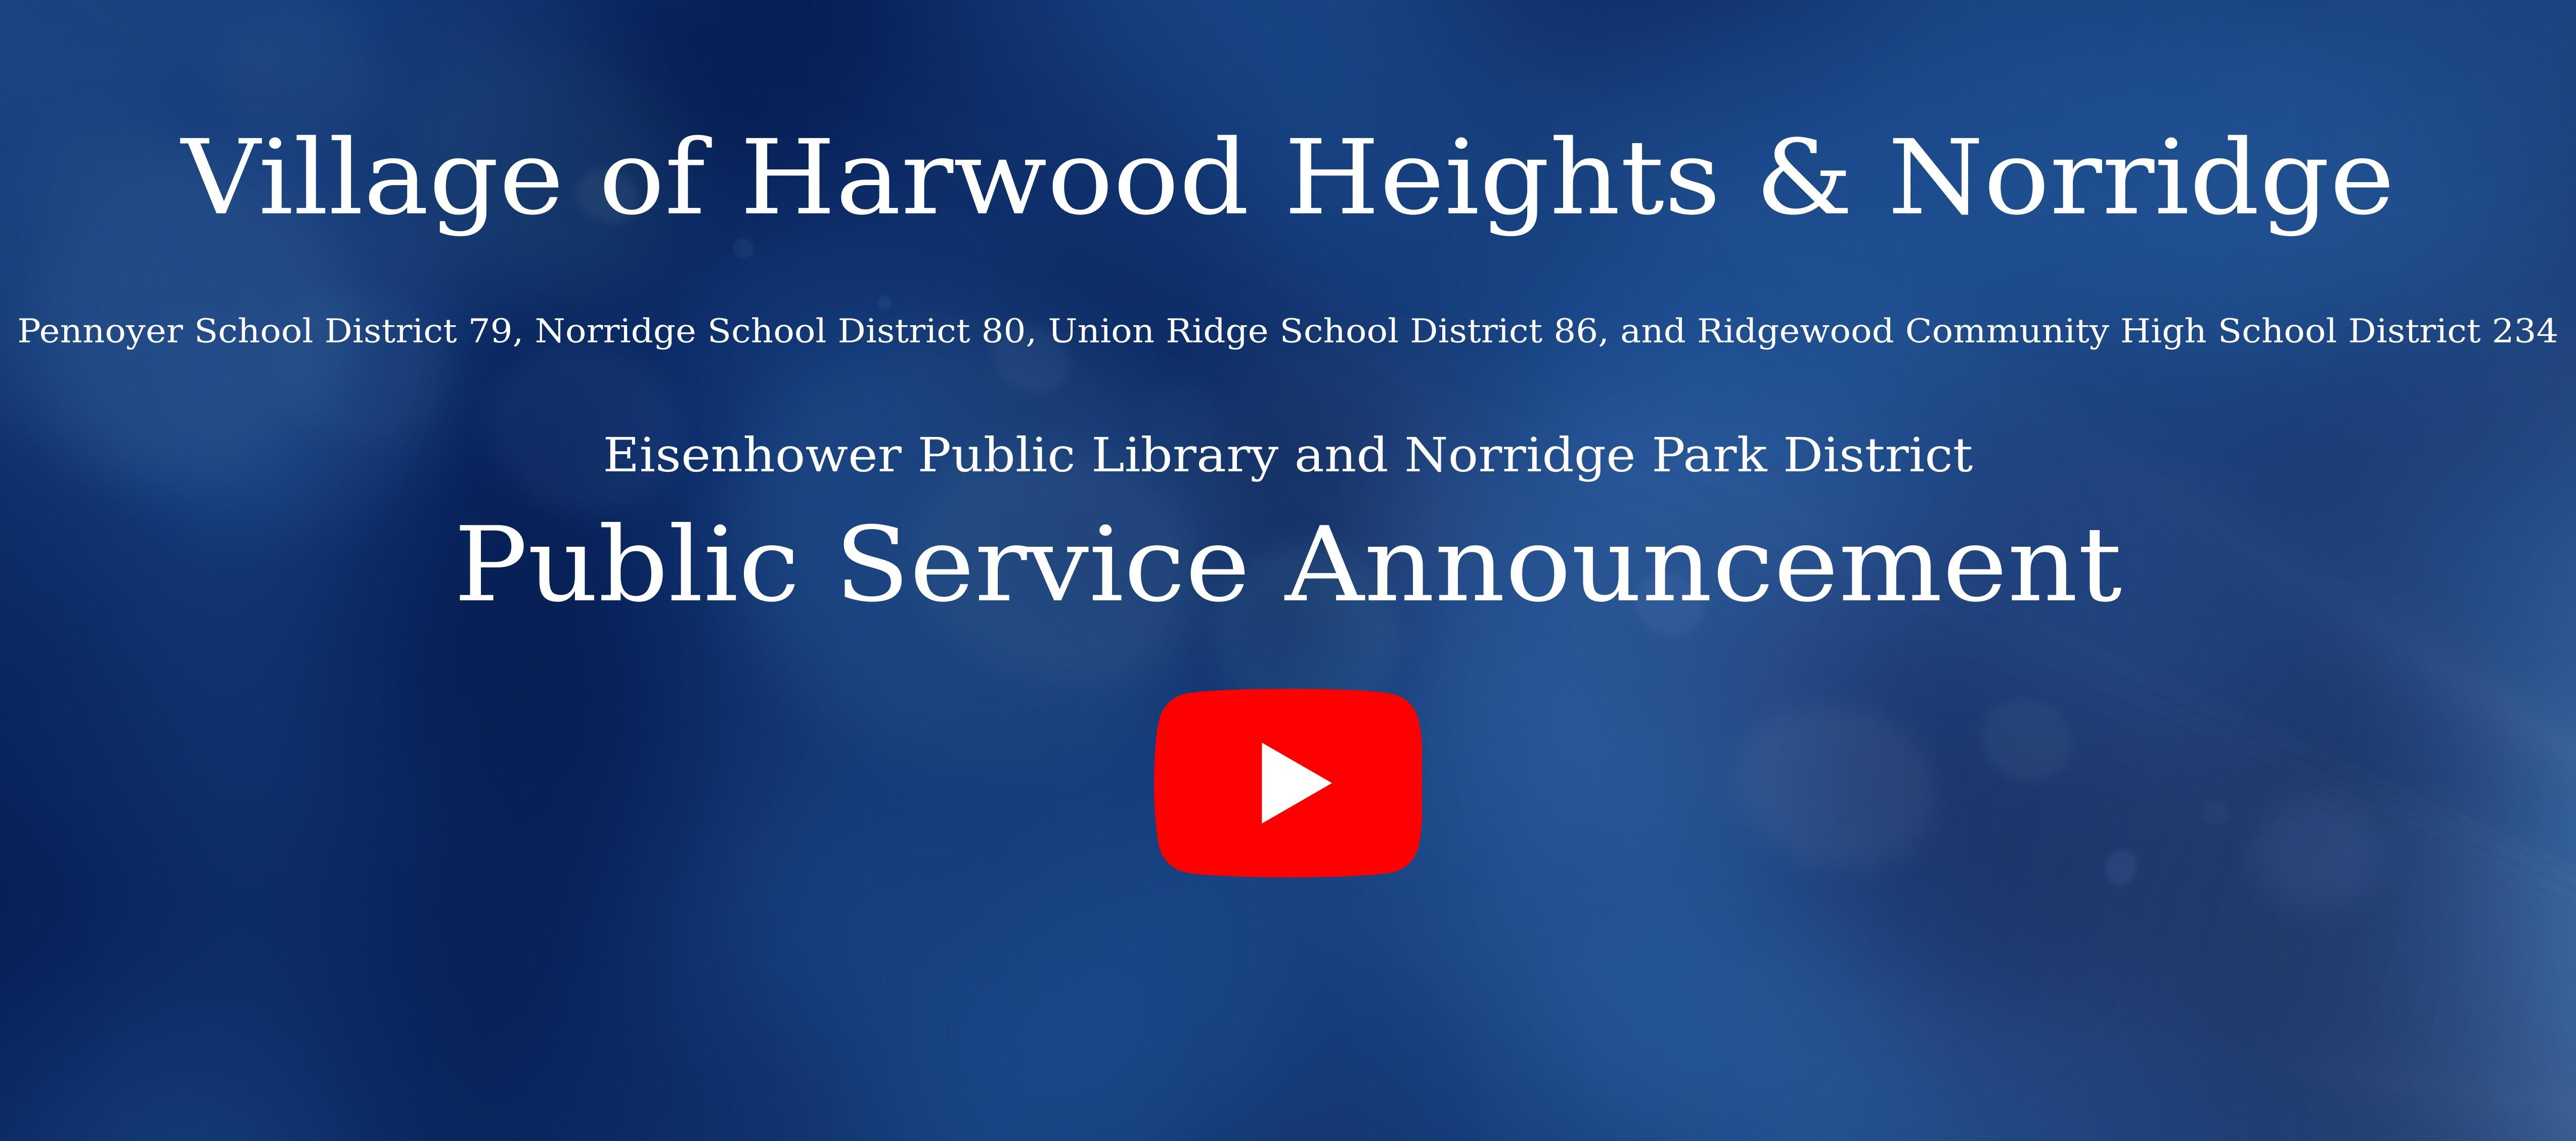 PSA Village of Harwood Heights and Norridge